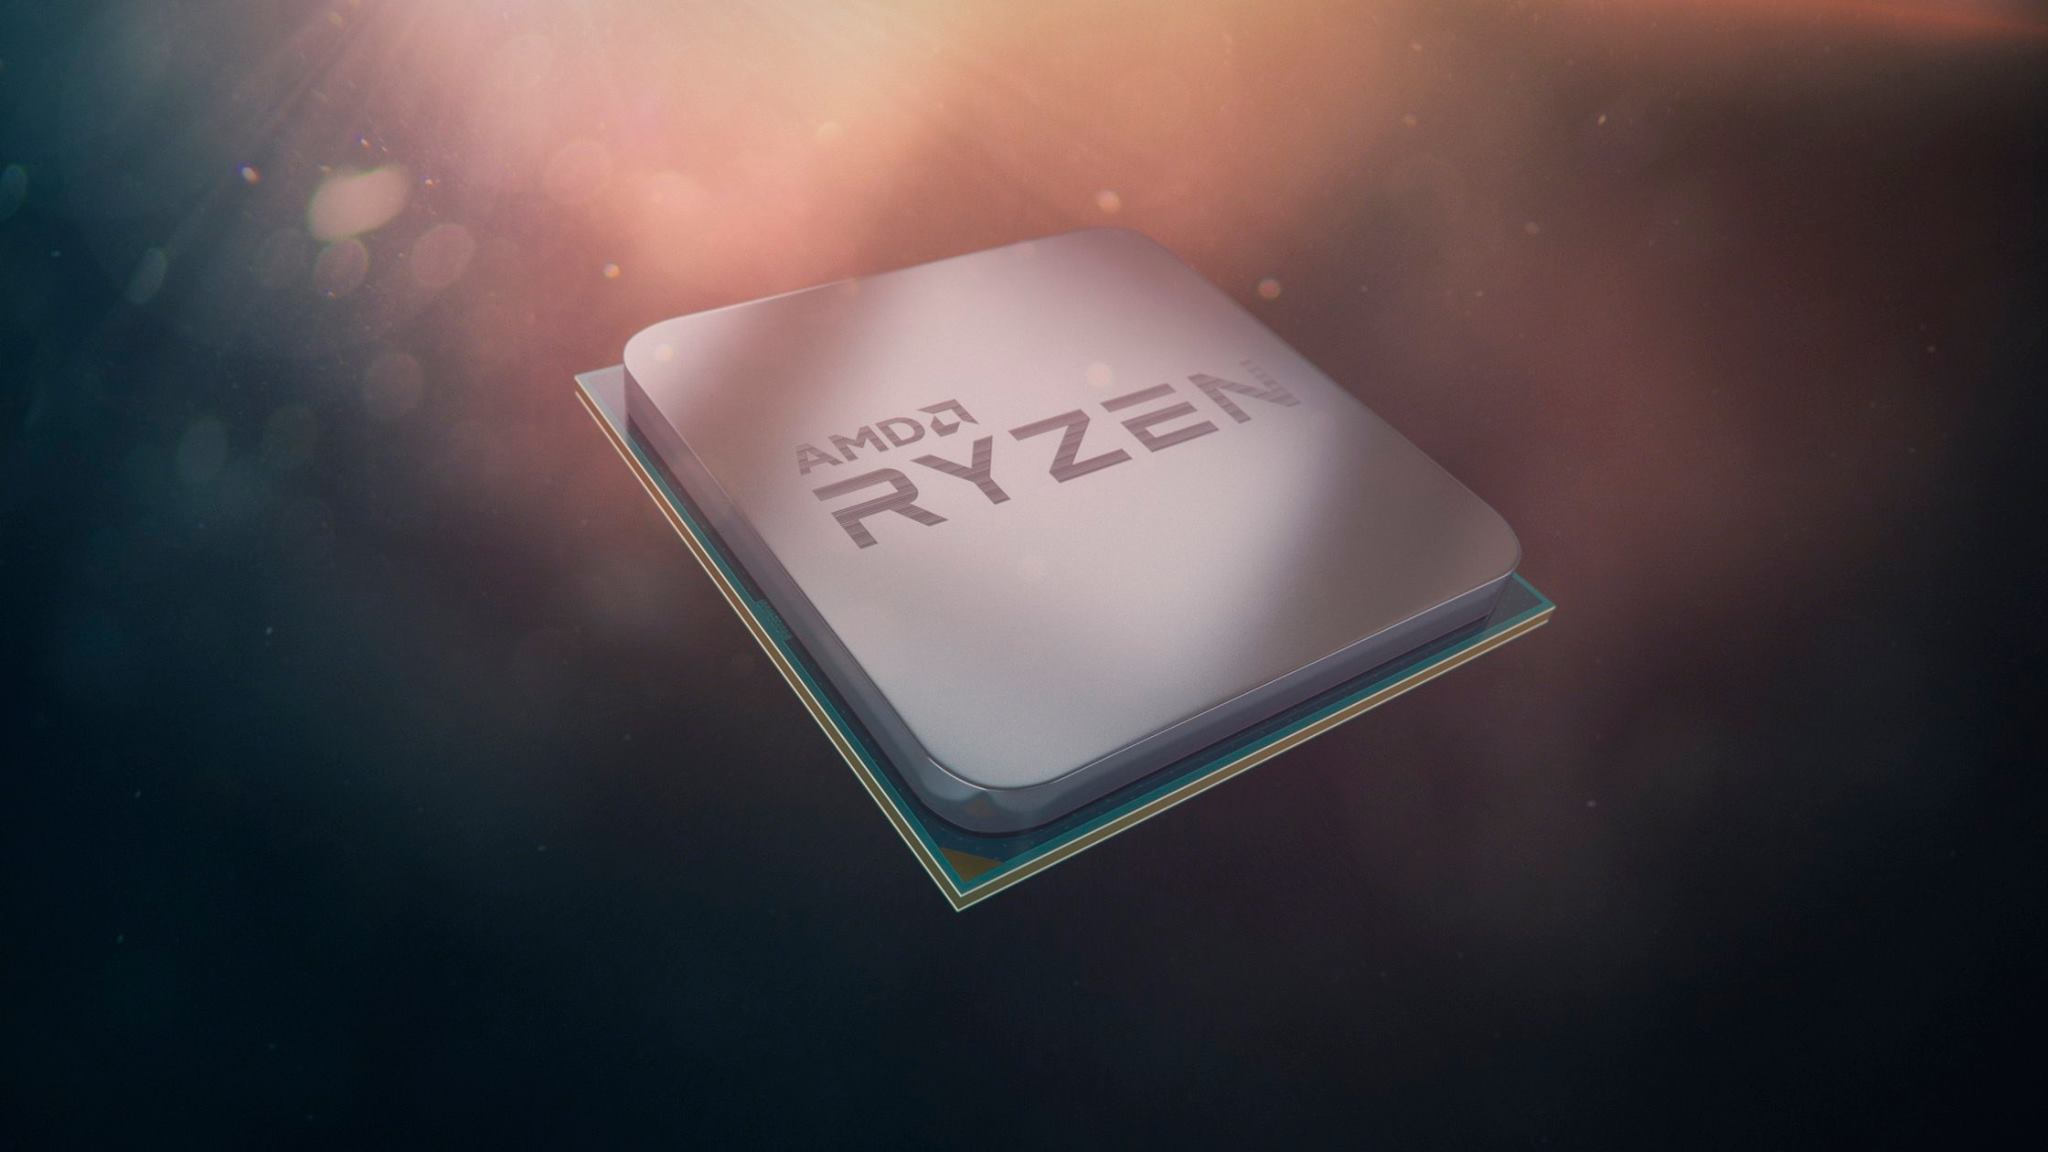 AMD launches its budget Ryzen 3 chips starting at $109